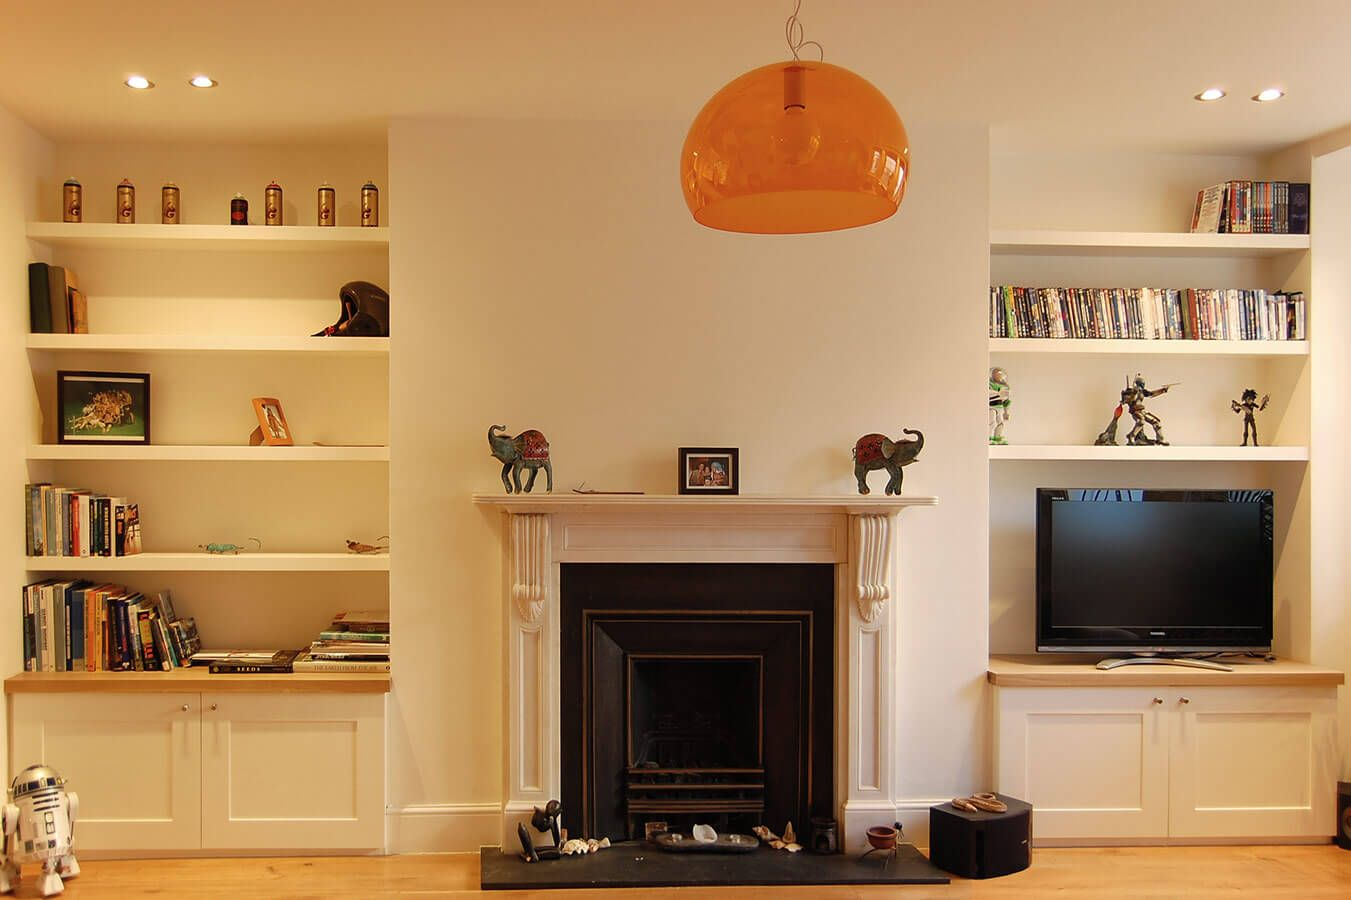 Brick Fireplace With Shelves Either Side